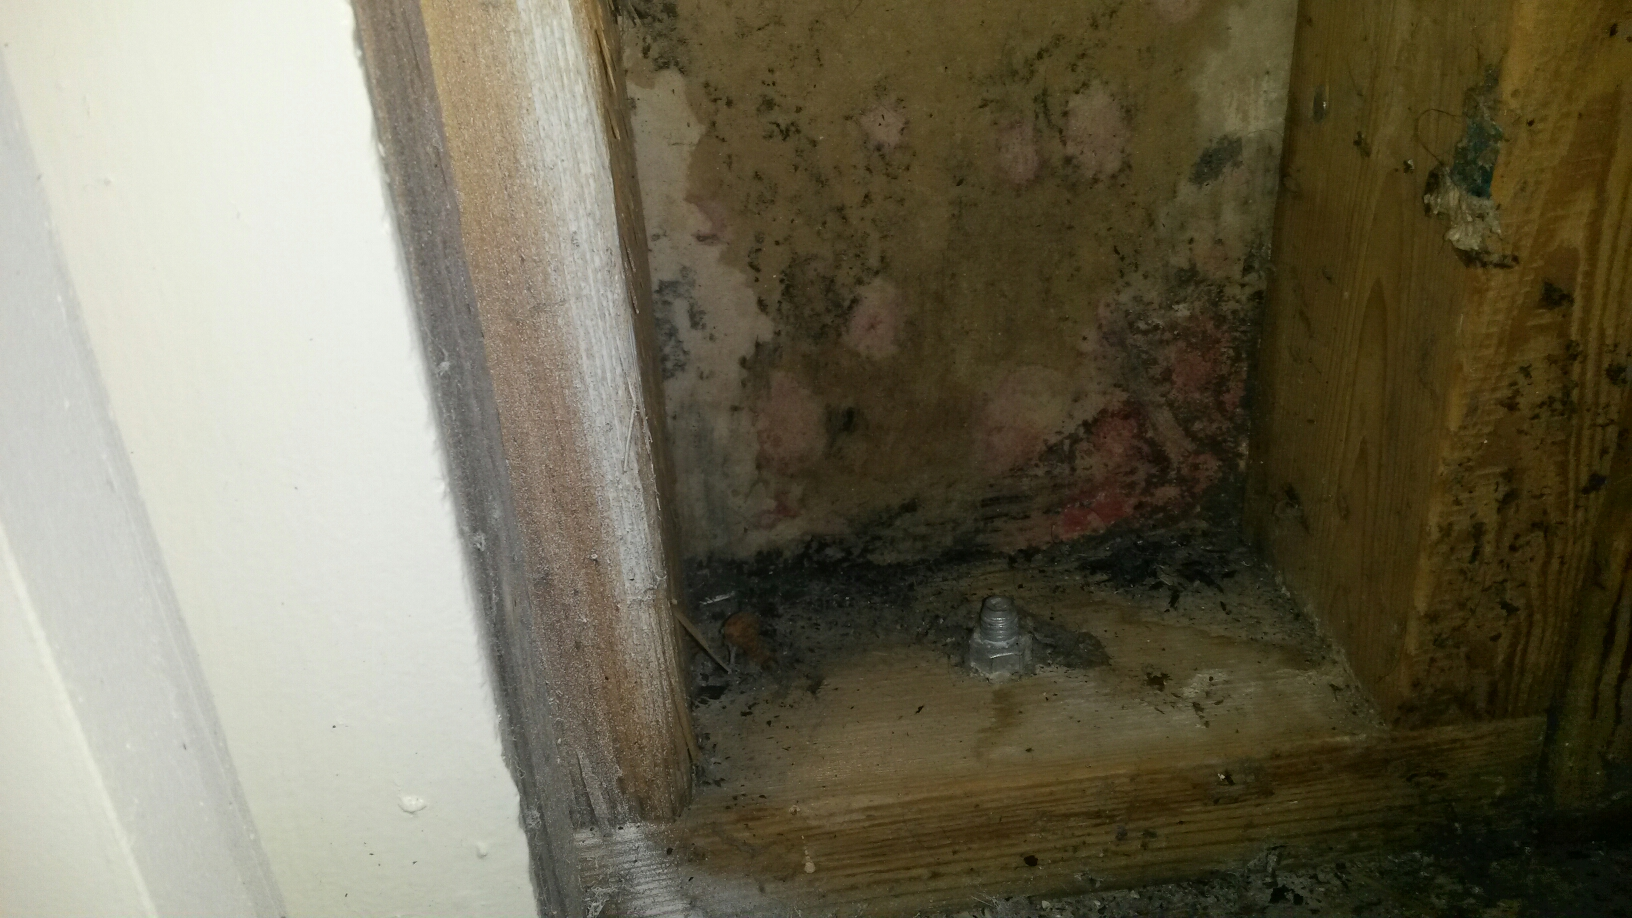 Roy, UT - Mold inspection in Roy Utah for a prospective home buyer. Multiple issues going on. A couple of leaks and some significant ground water problems. Will probably n?e a sump pump in addition to the mold cleanp.